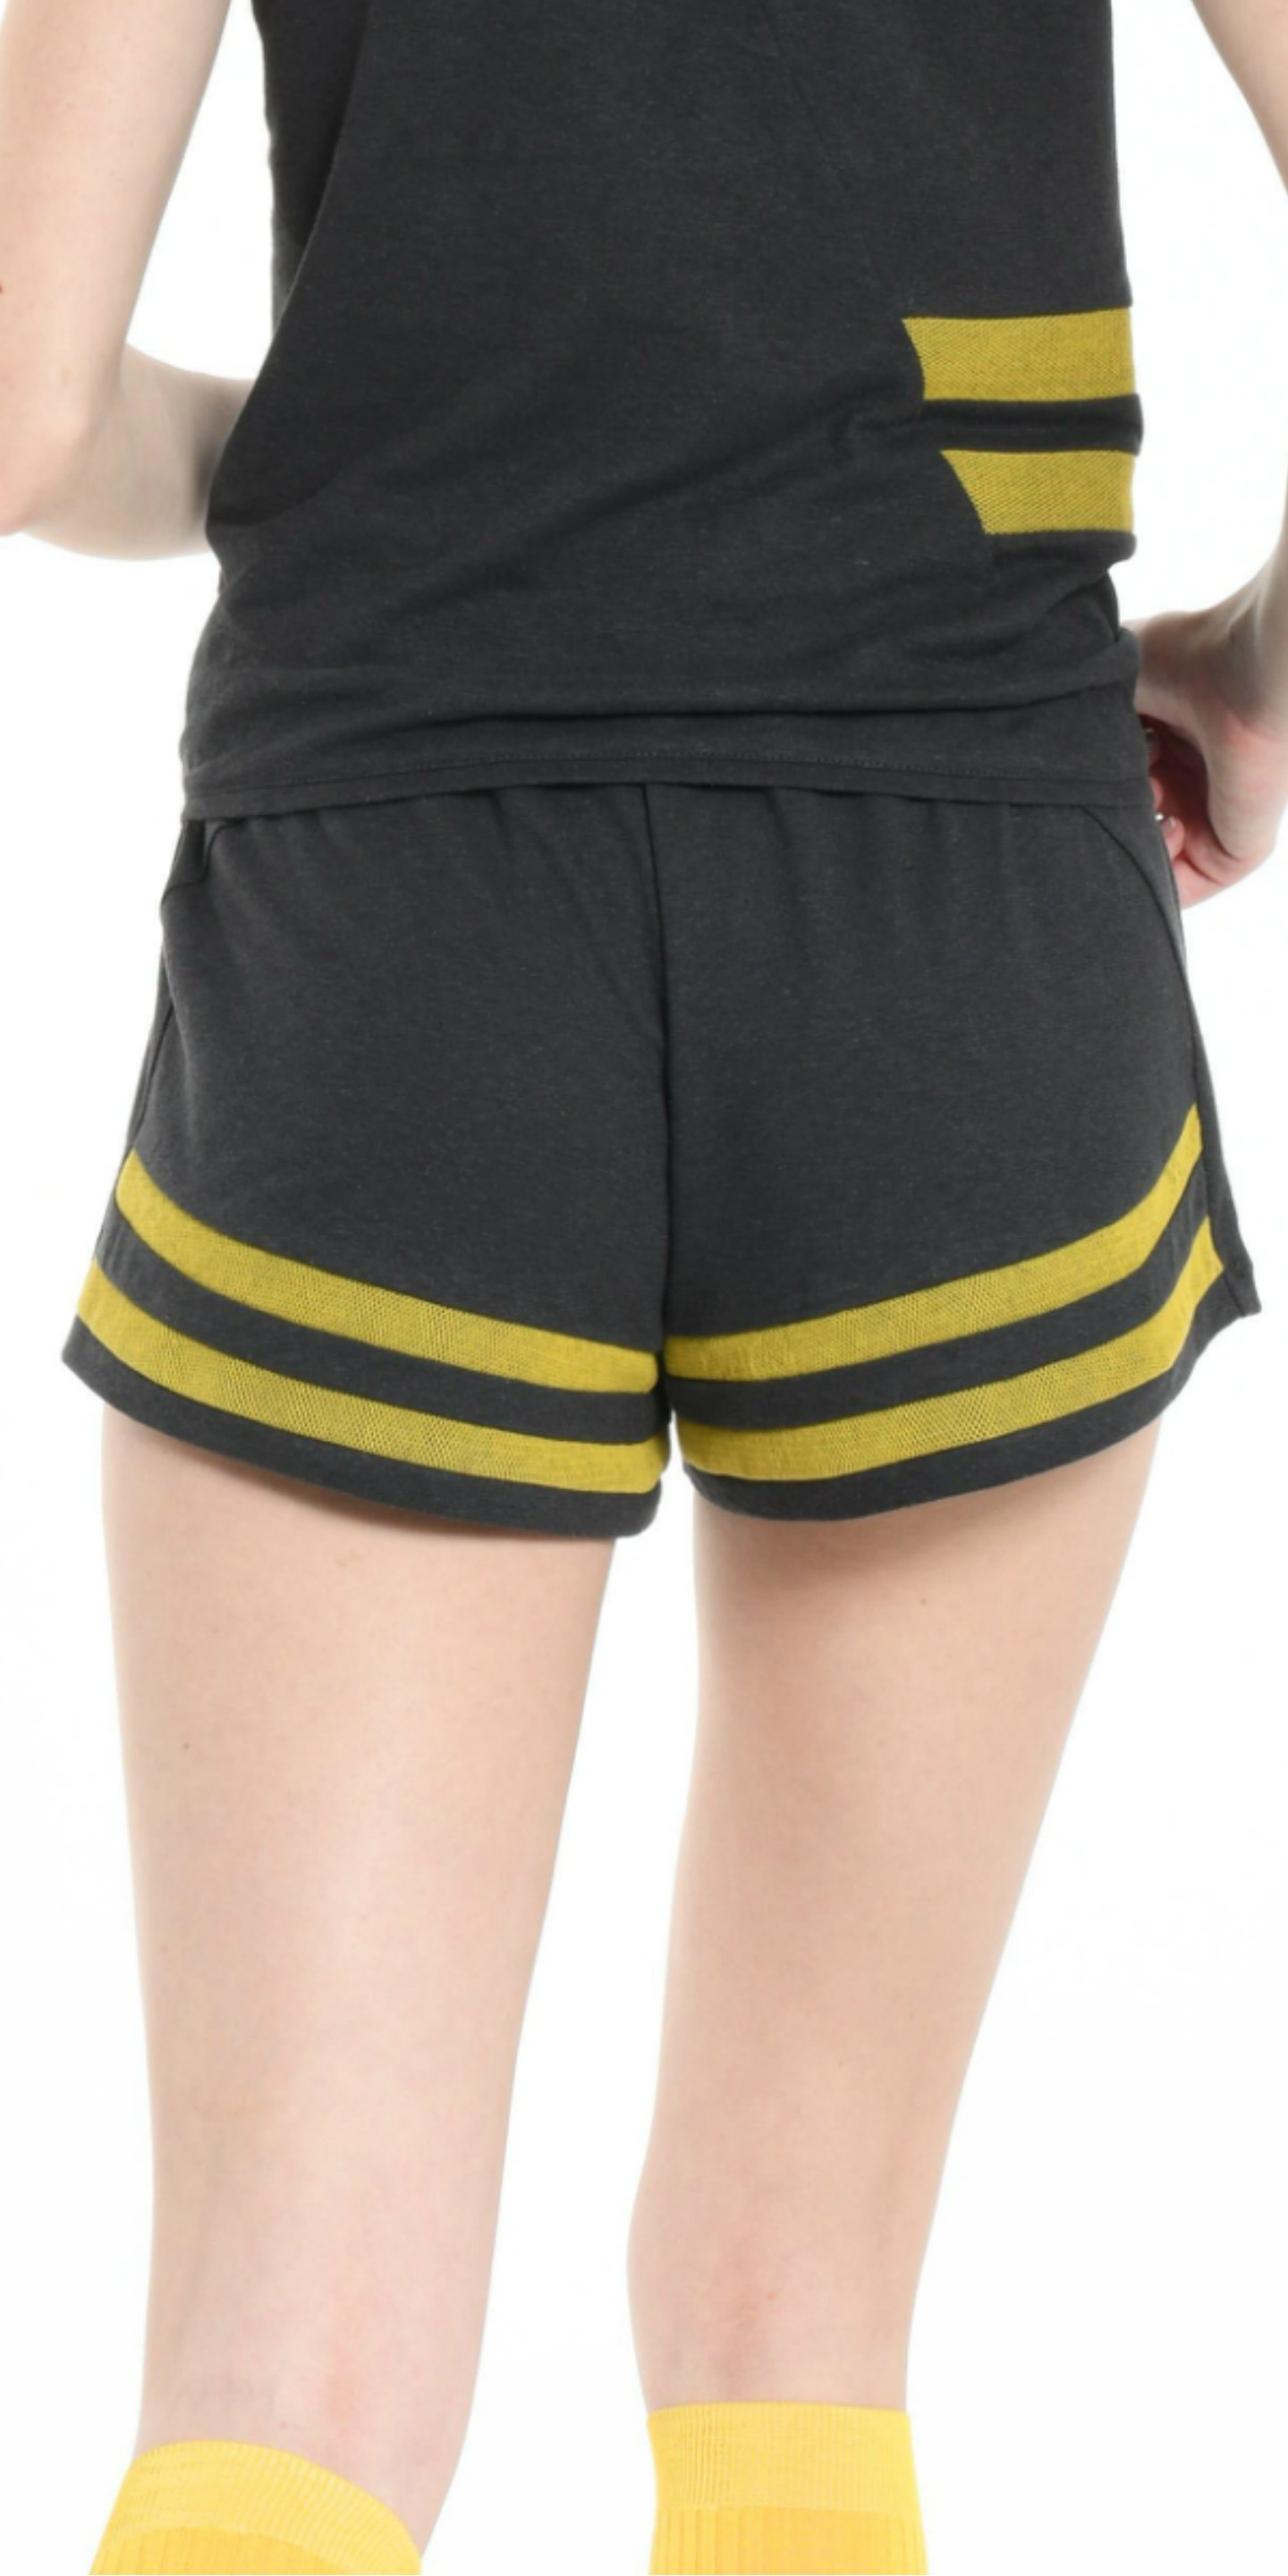 MINISHORT DARK GREY  WITH YELLOW STRIPS from BEARD & FRINGE